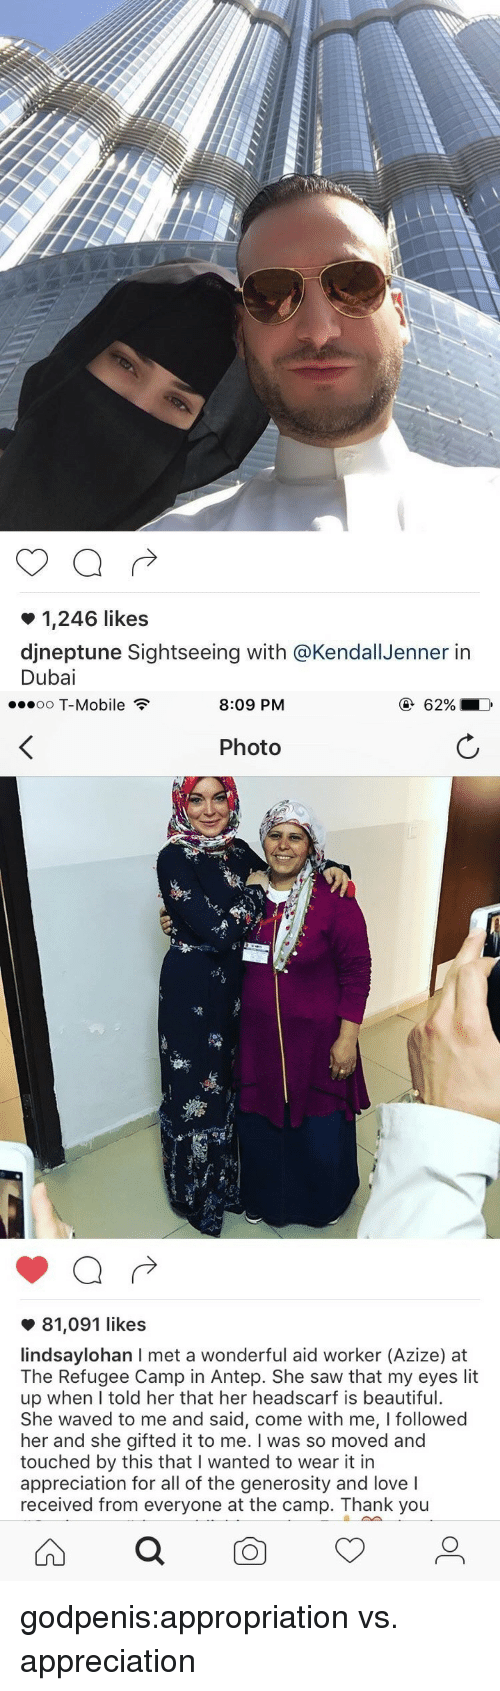 appropriation: 1,246 likes  djneptune Sightseeing with @KendallJenner itn  Dubai   oo T-Mobile  8:09 PM  Photo  81,091 likes  lindsaylohan I met a wonderful aid worker (Azize) at  The Refugee Camp in Antep. She saw that my eyes lit  up when lI told her that her headscarf is beautiful.  She waved to me and said, come with me, I followed  her and she gifted it to me. I was so moved and  touched by this that I wanted to wear it in  appreciation for all of the generosity and love I  received from everyone at the camp. Thank you godpenis:appropriation vs. appreciation